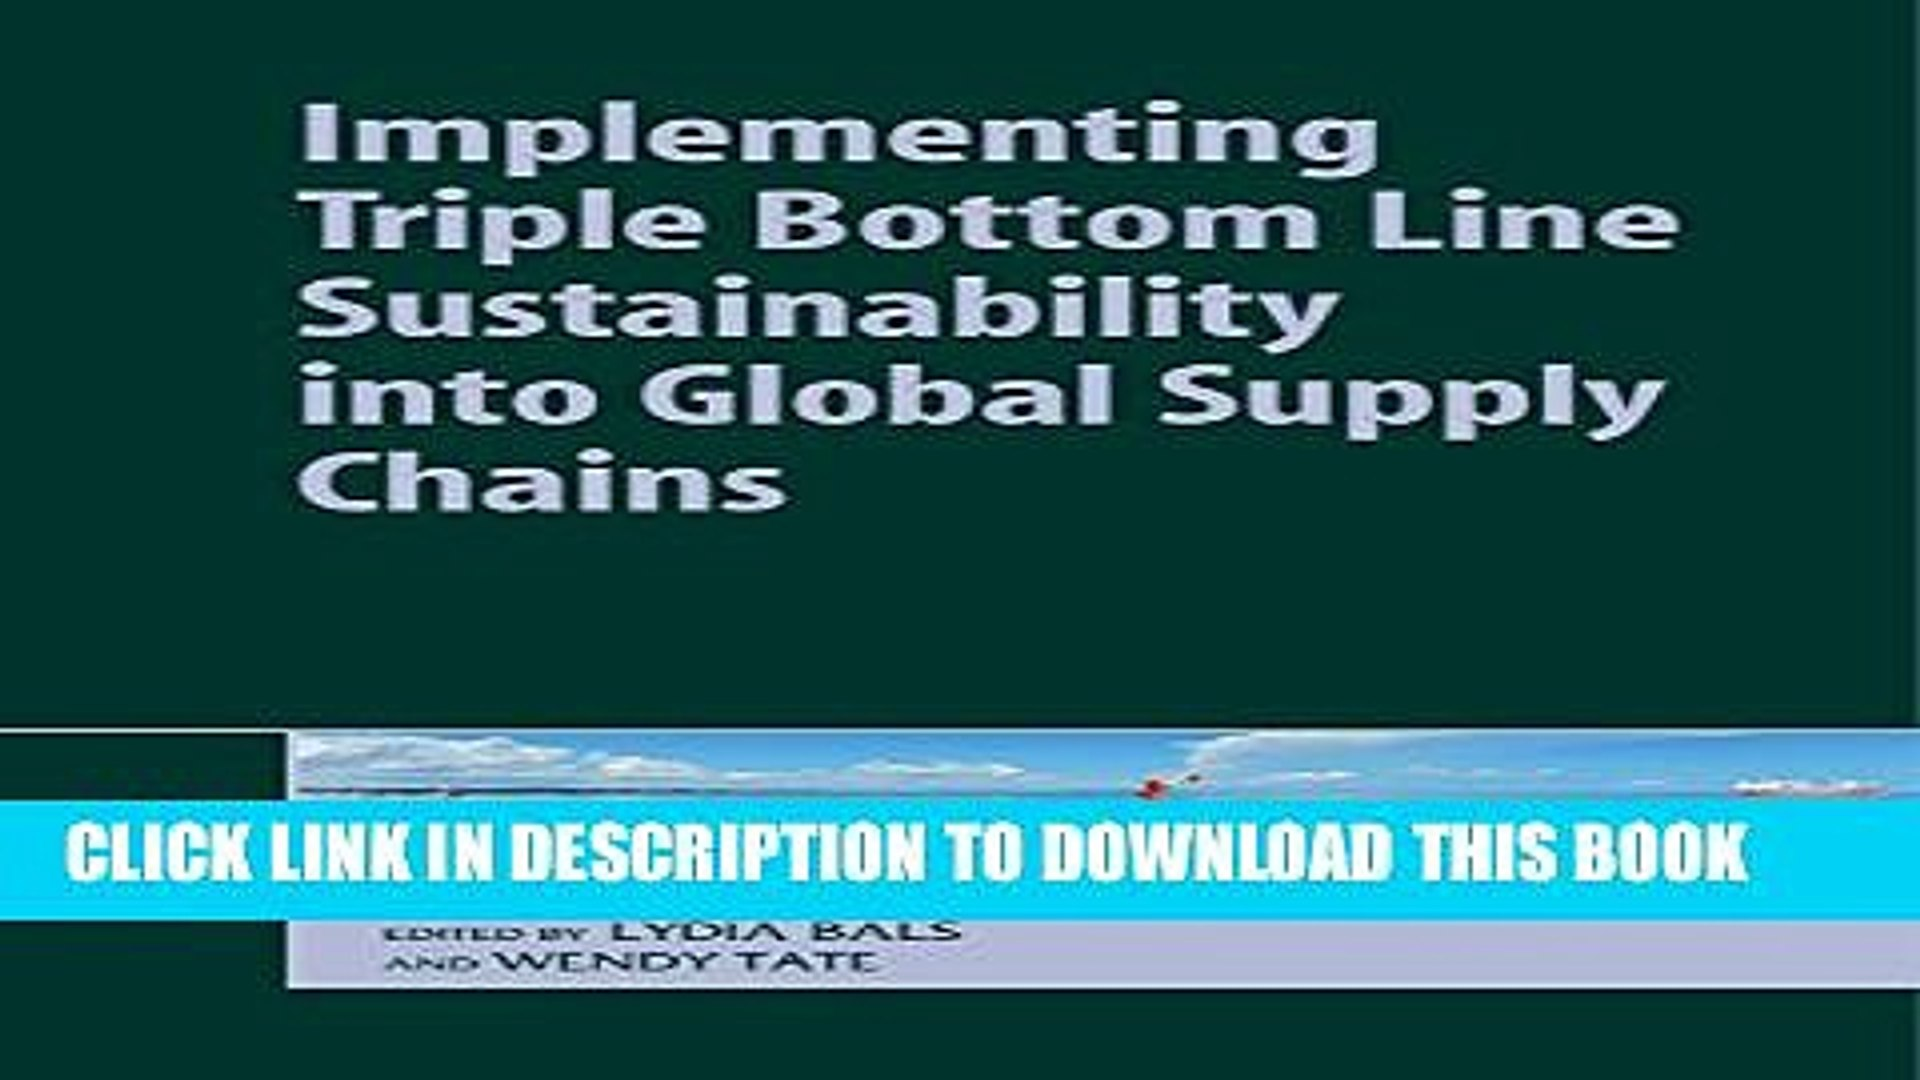 [PDF] Implementing Triple Bottom Line Sustainability into Global Supply Chains Full Online